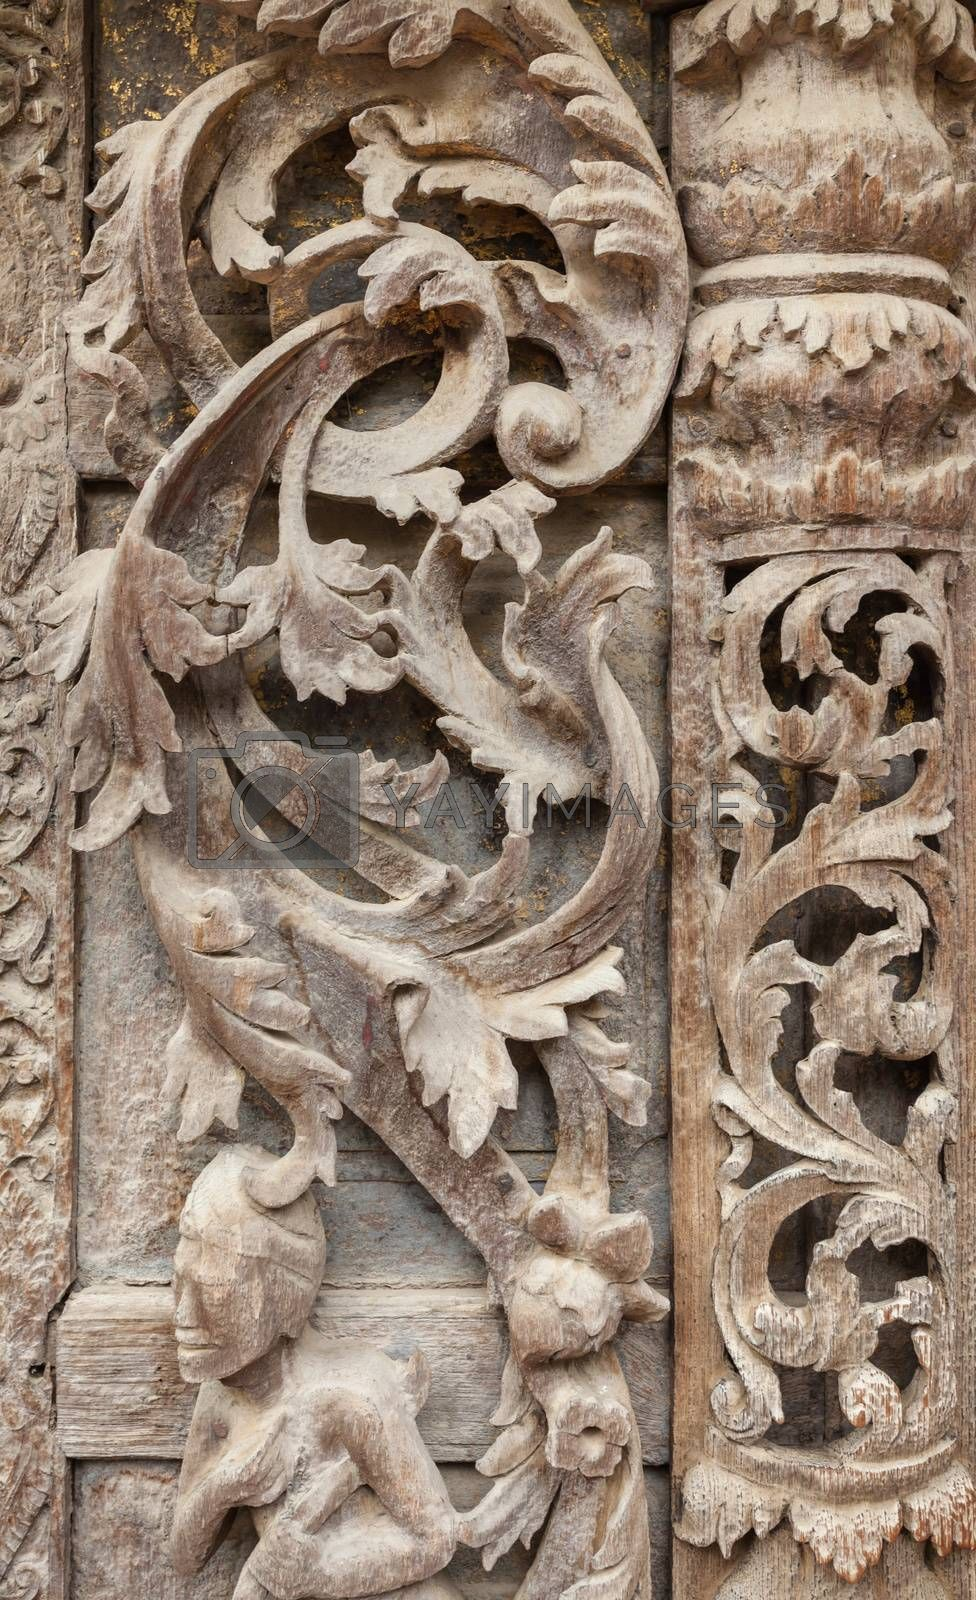 Old wood carvings on the wall temple in Myanmar